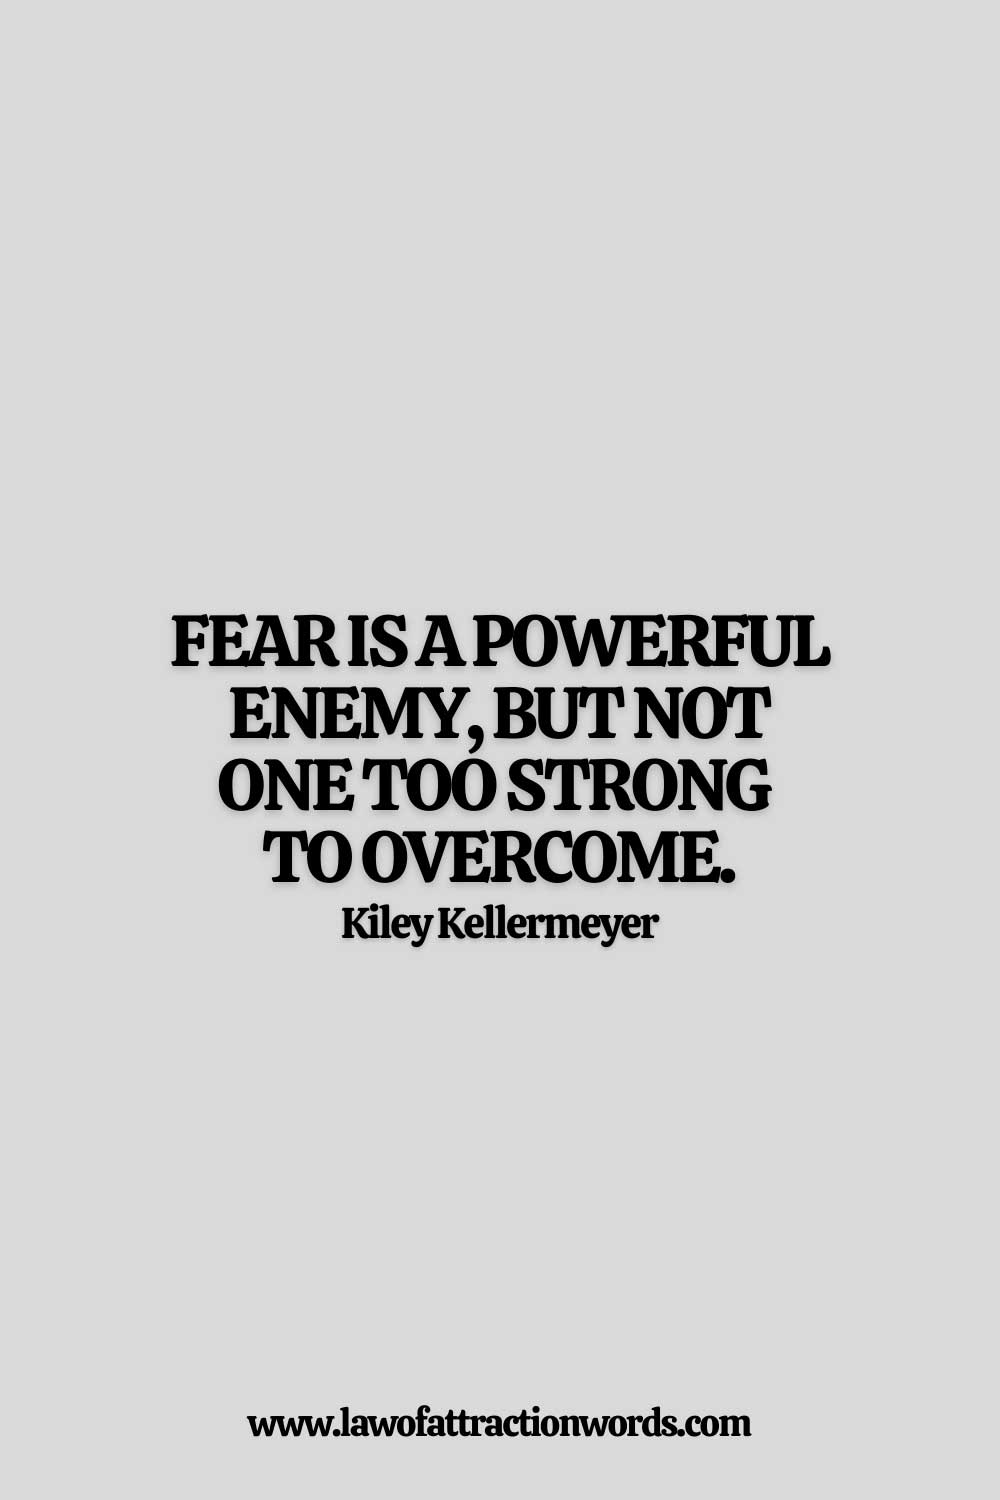 Powerful Quotes To Overcome Fear and Anxiety